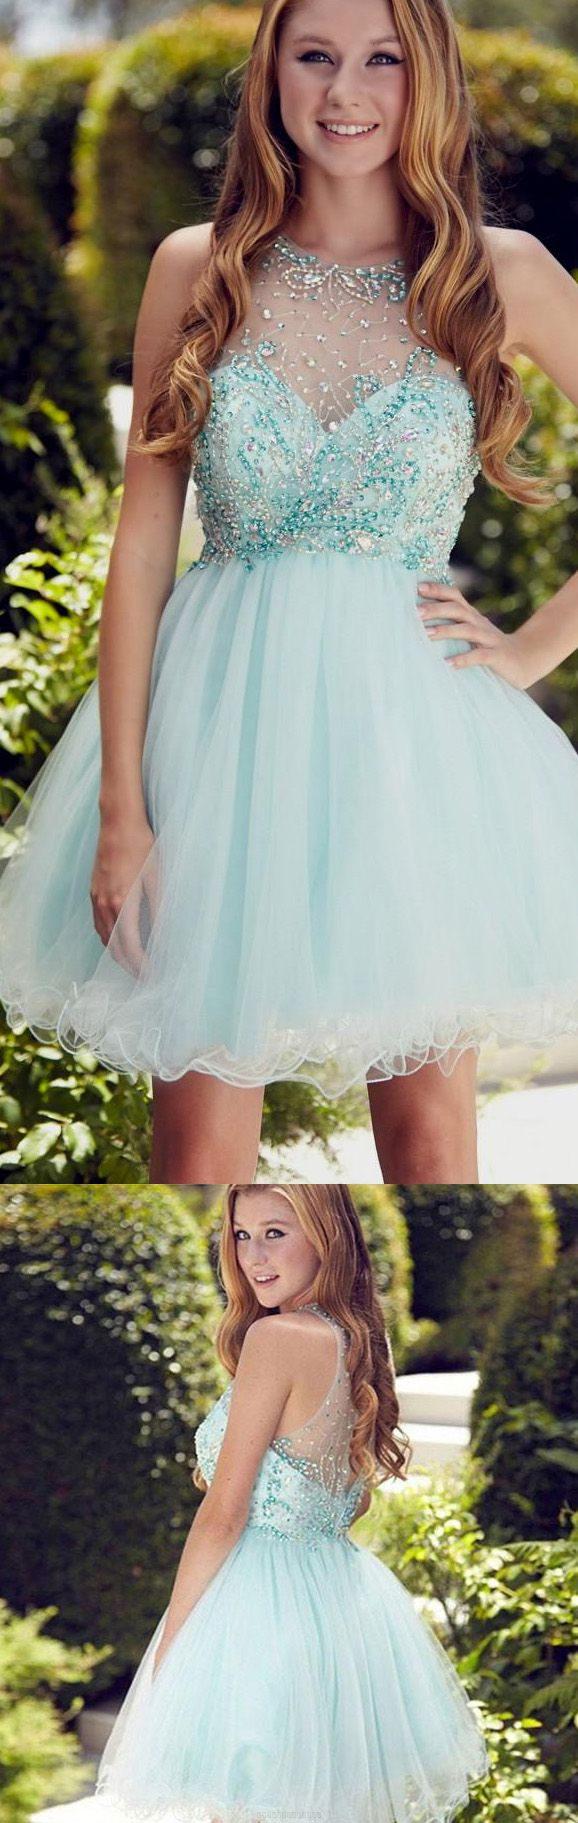 Rhinestone Prom Dresses, Light Blue A-line/Princess Homecoming Dresses, Short Light Blue Party Dresses, 2017 Homecoming Dress Rhinestone Sleeveless Short Prom Dress Party Dress WF02G45-208